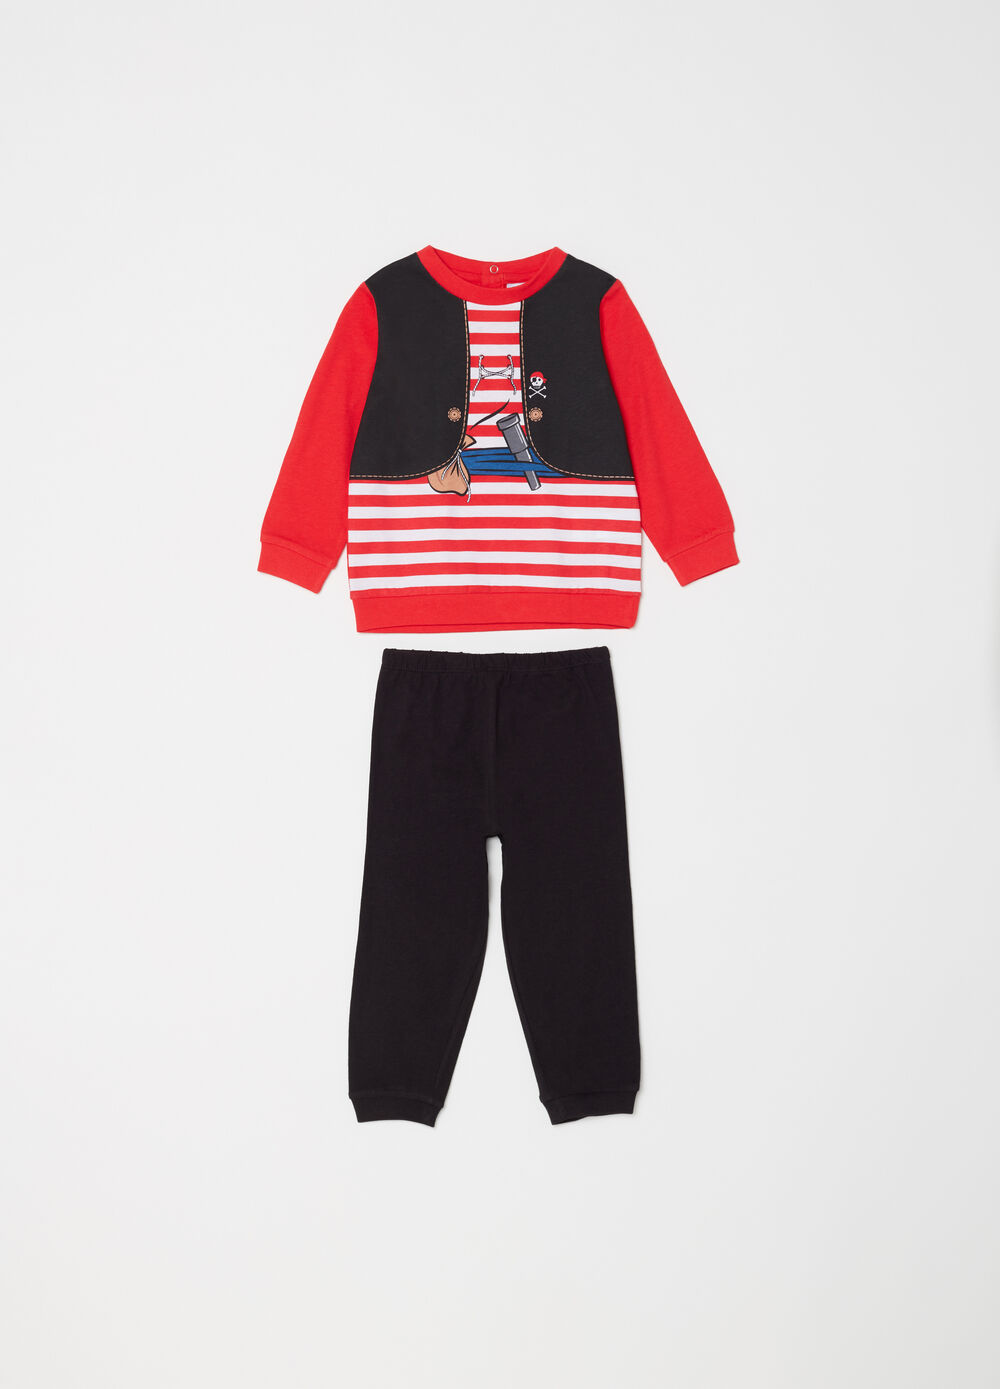 Striped and printed full-length pyjamas in 100% cotton